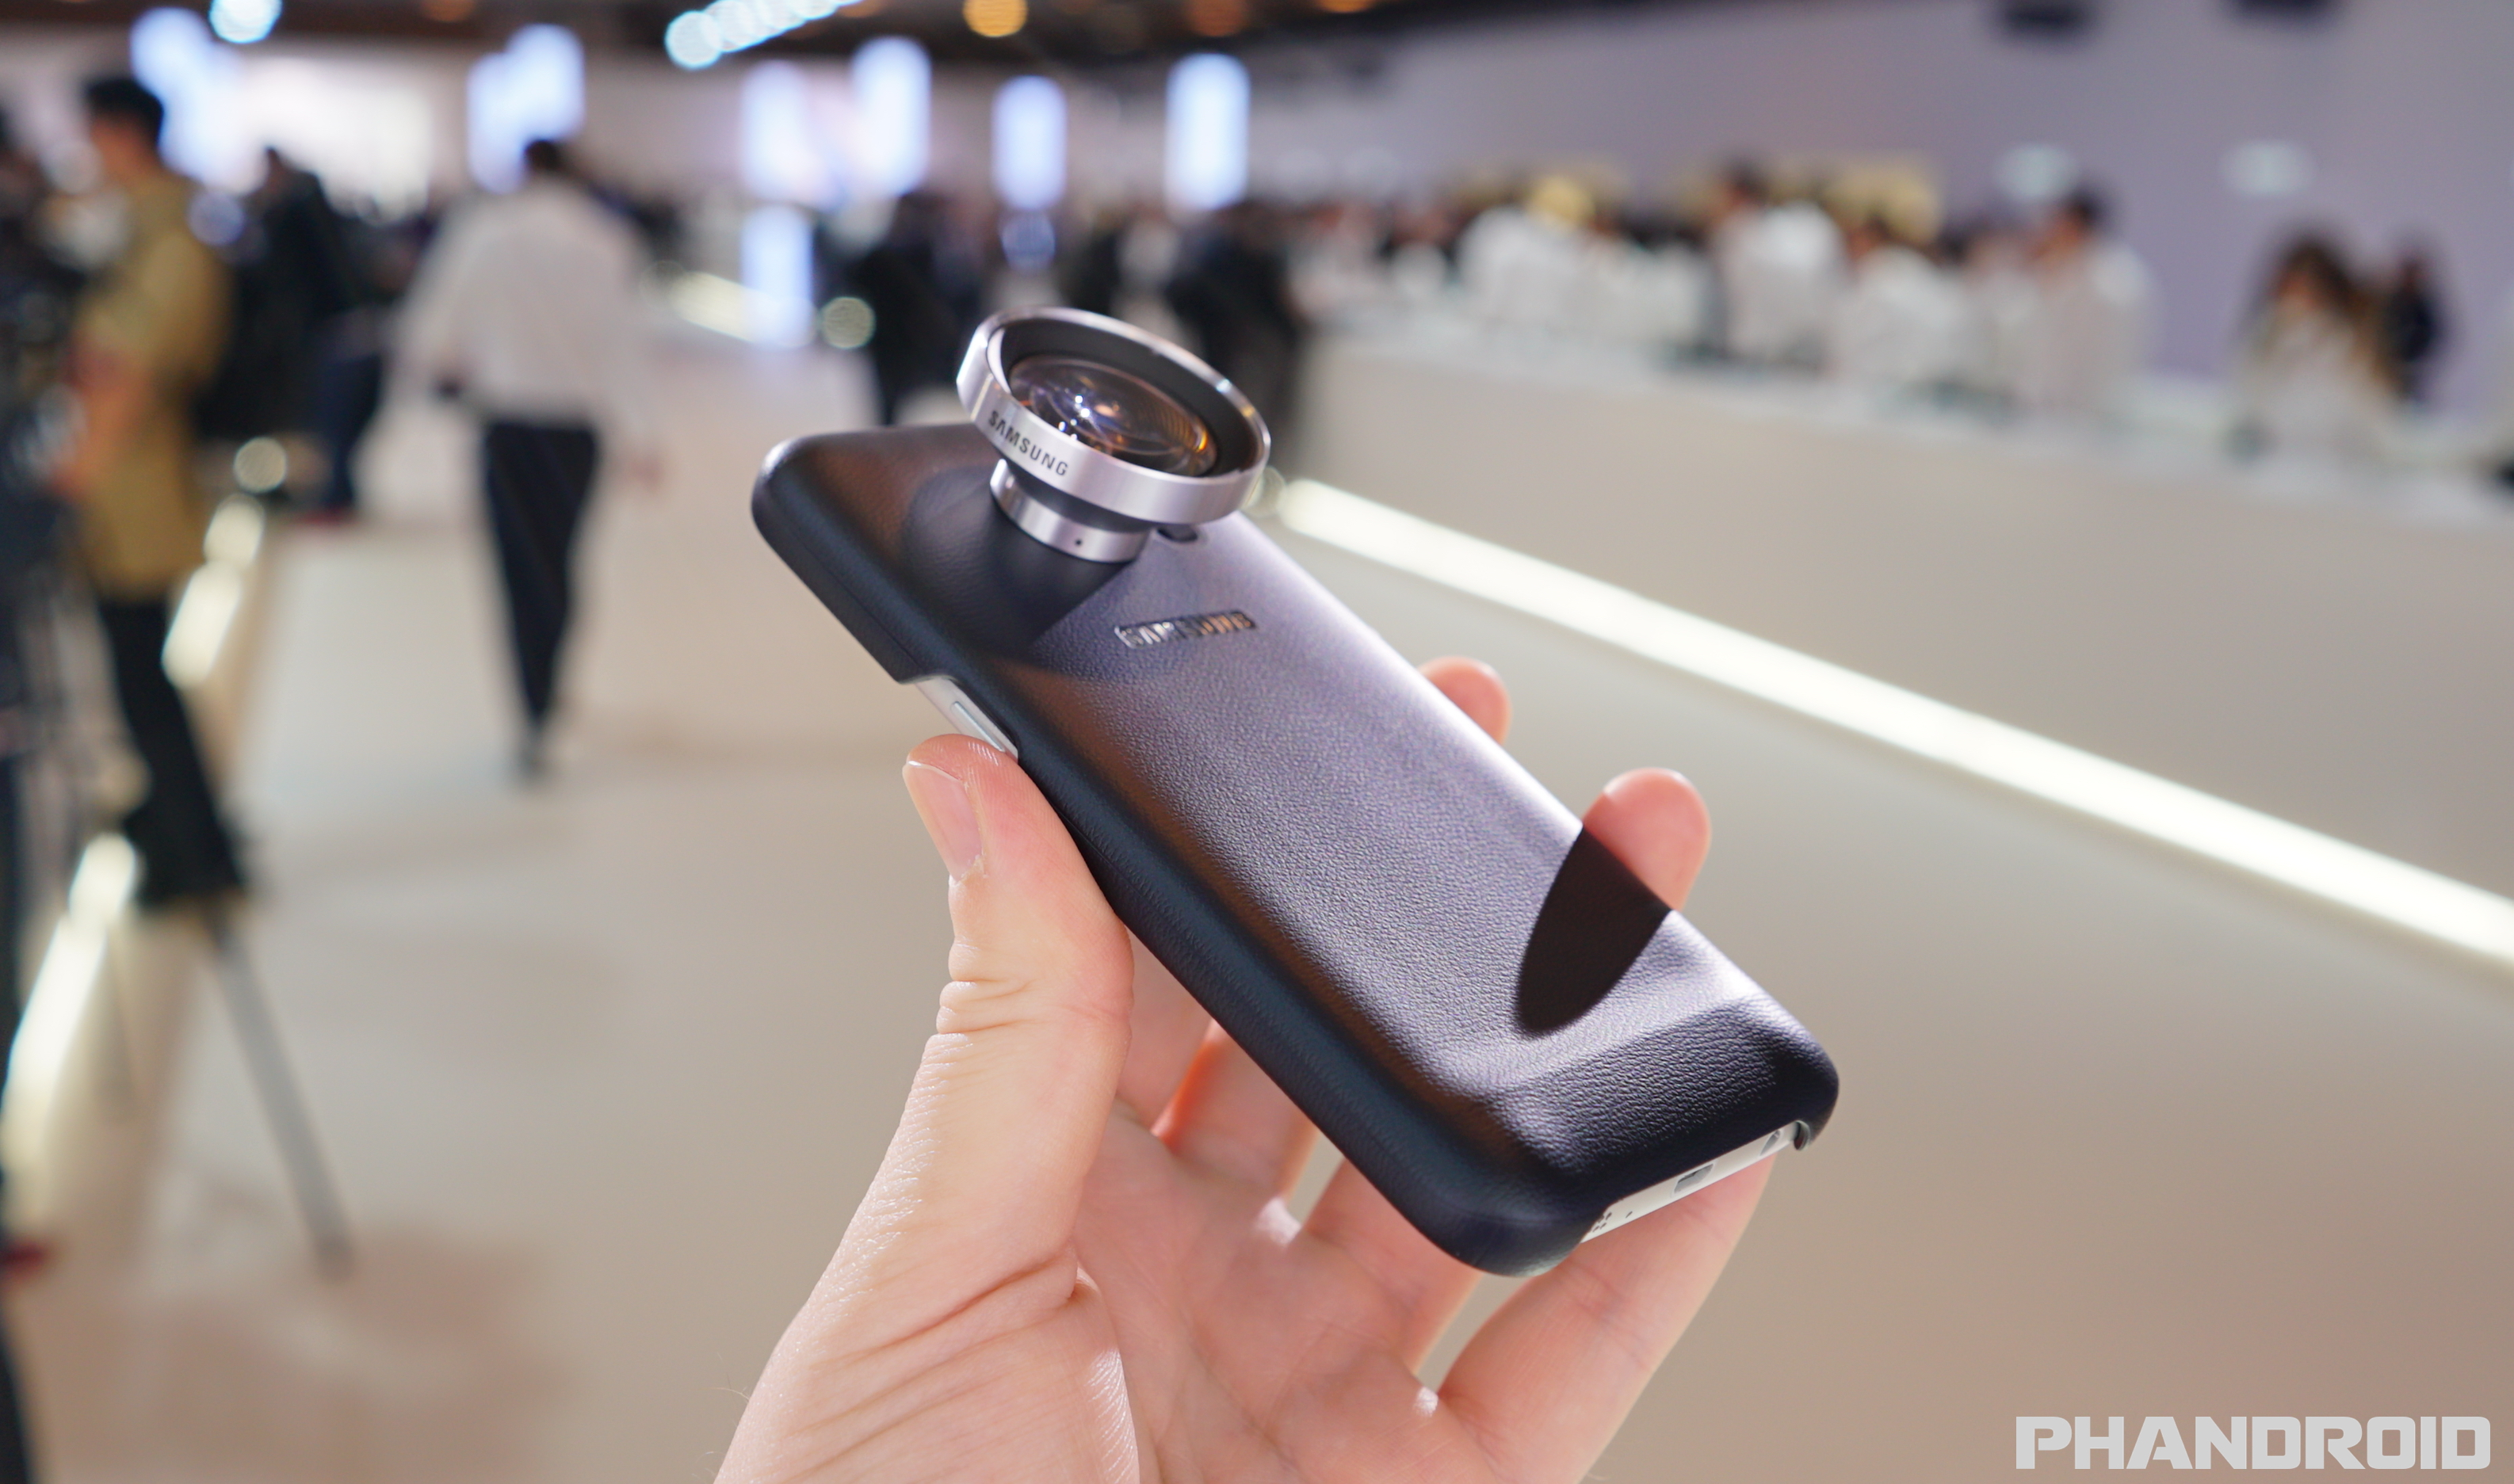 cheaper f2787 1c753 The Samsung Lens Cover allows you to swap out different camera ...